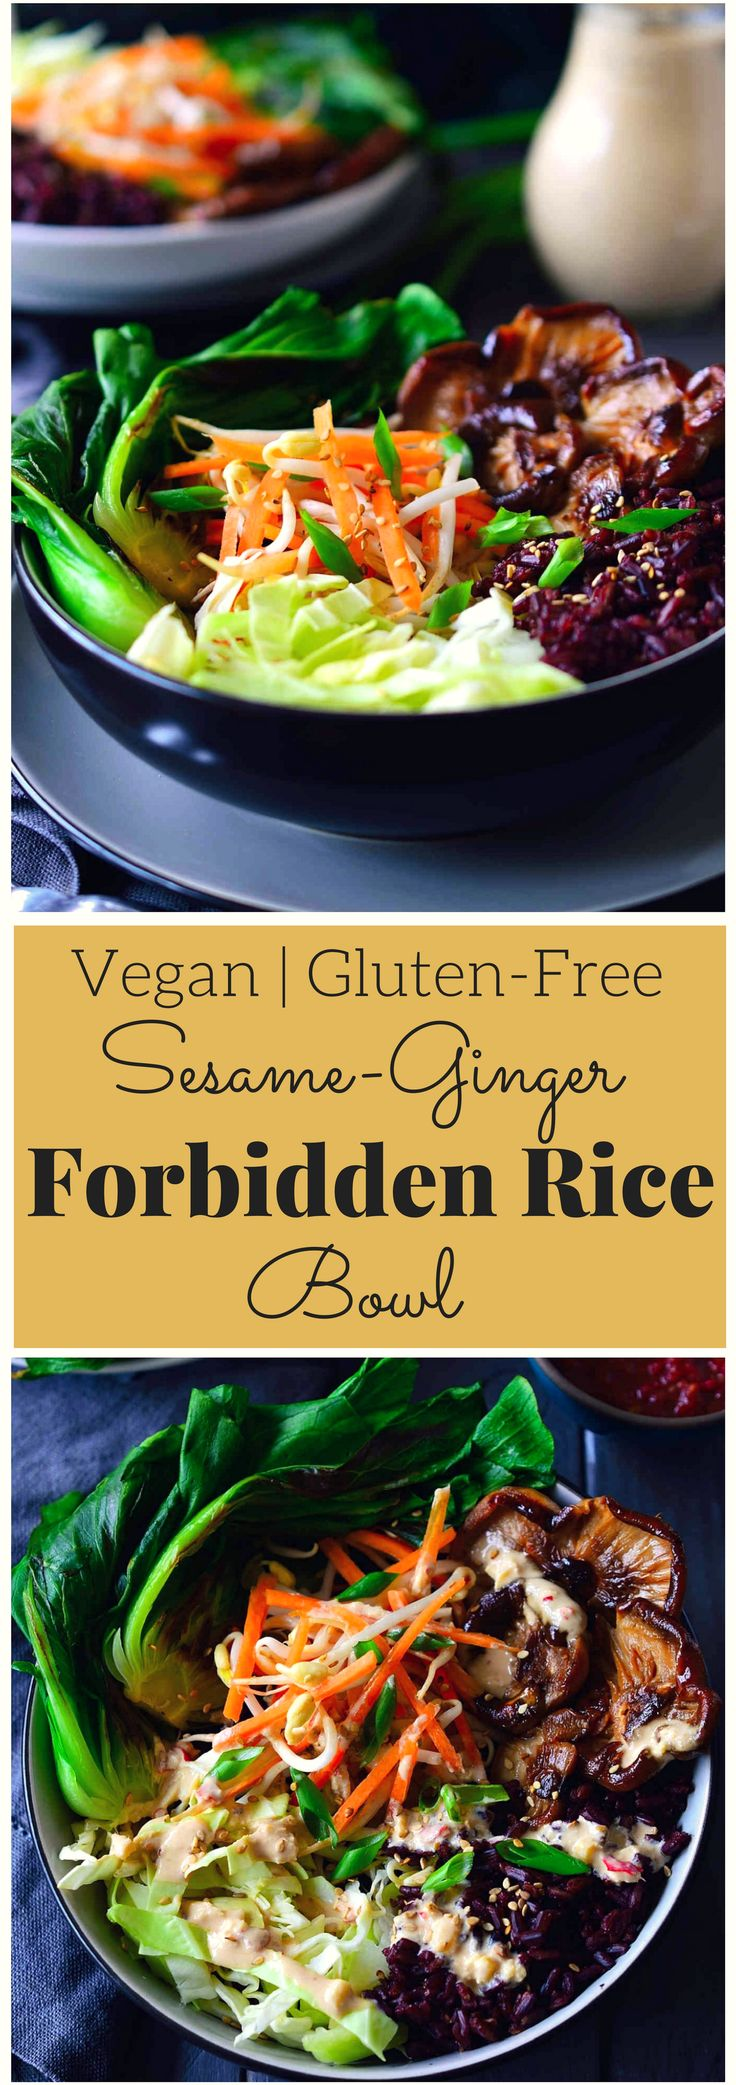 This vegan forbidden rice bowl with bok choy, shiitake mushrooms, crispy vegetables and sesame-ginger sauce is all you need for an easy, healthy and filling vegan dinner.